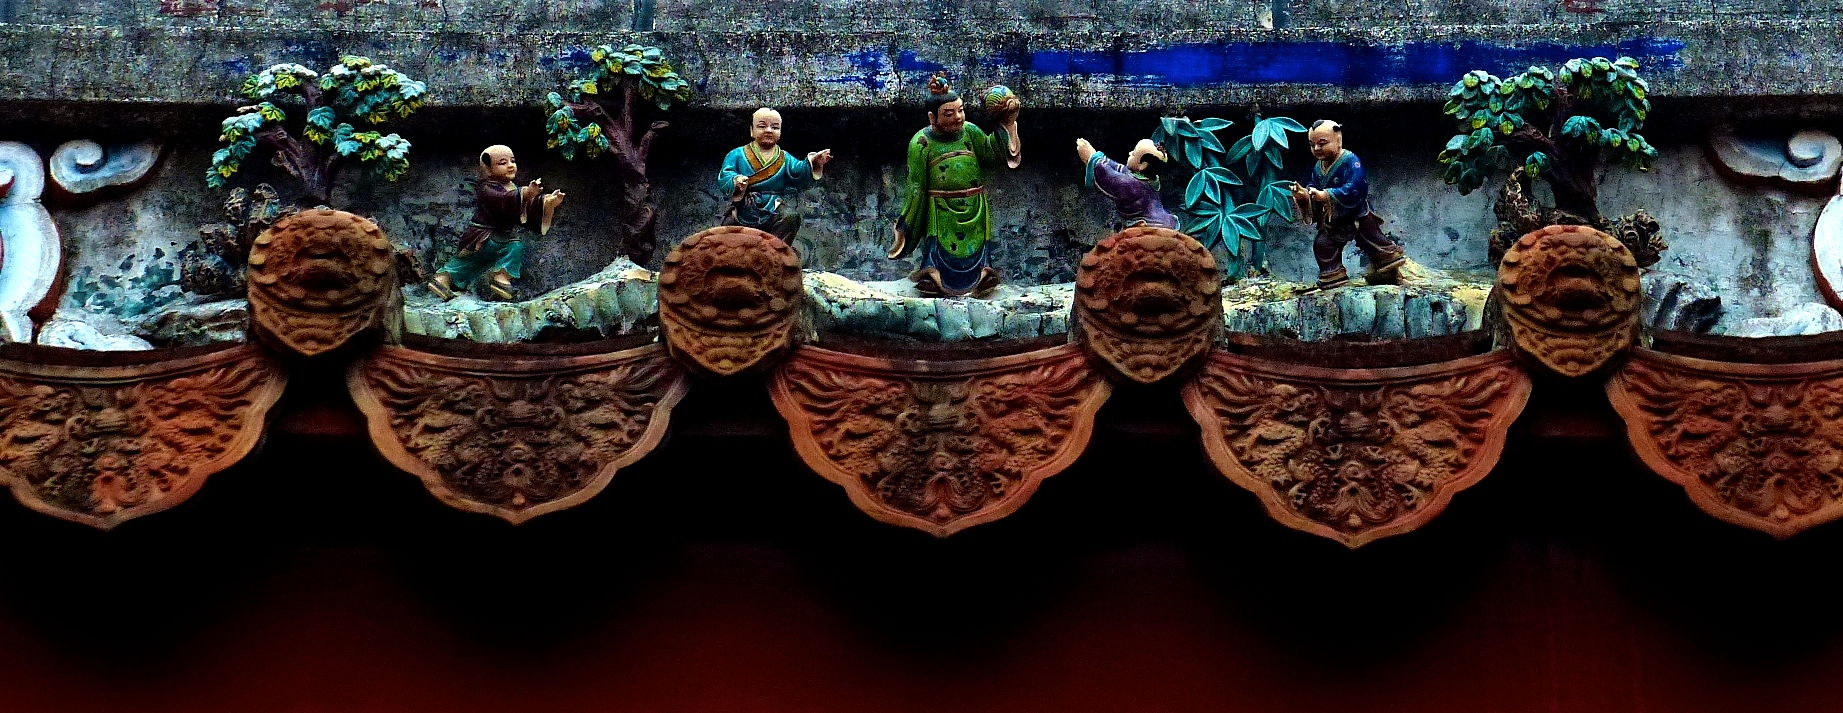 Ceramic rooftiles from a temple in the National Center for Traditional Arts, Yilan